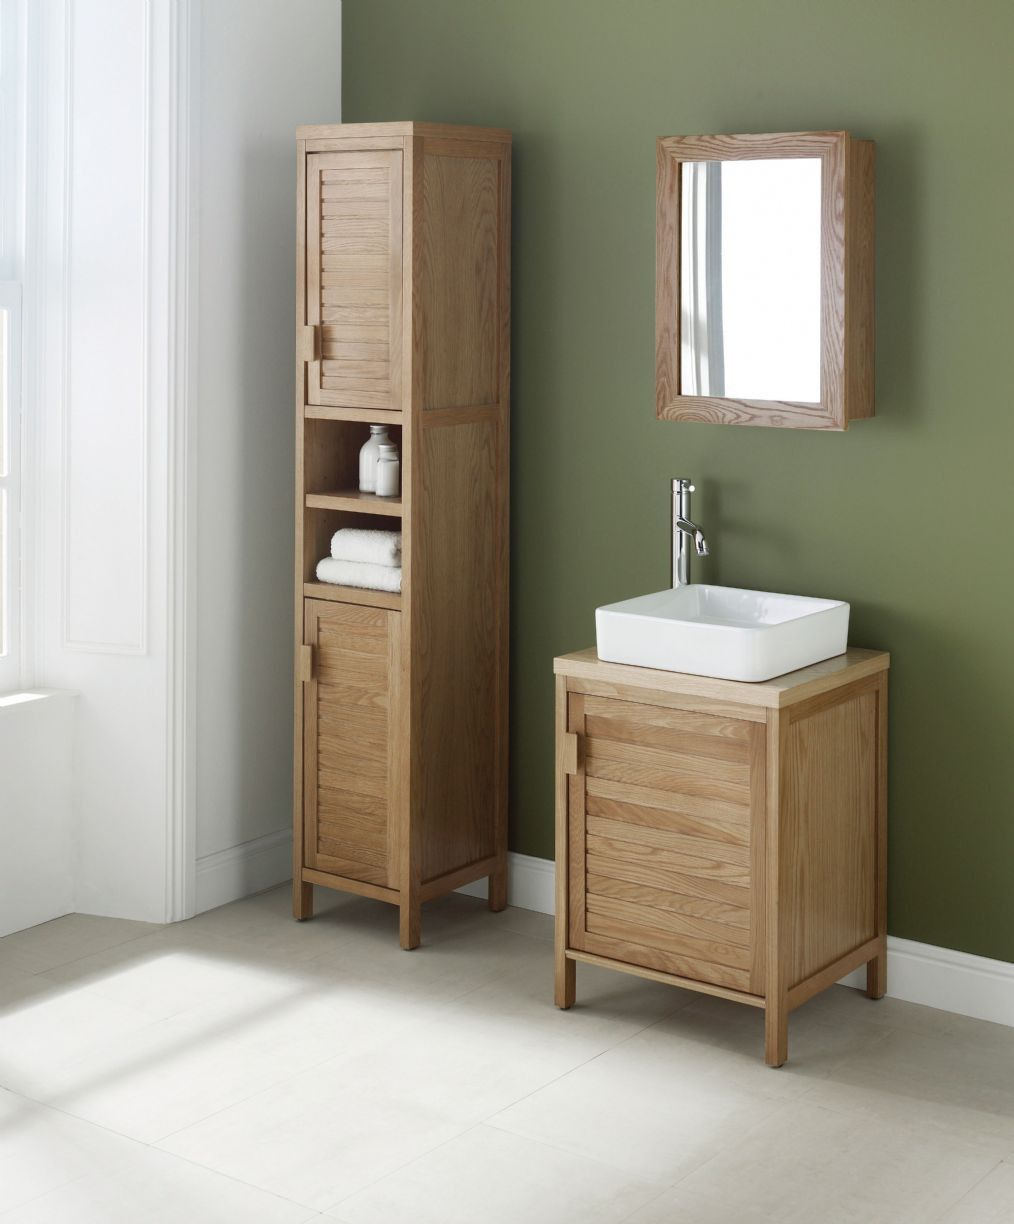 11+ Bathroom Cabinet Wood - Interior Paint Colors 11 Check more